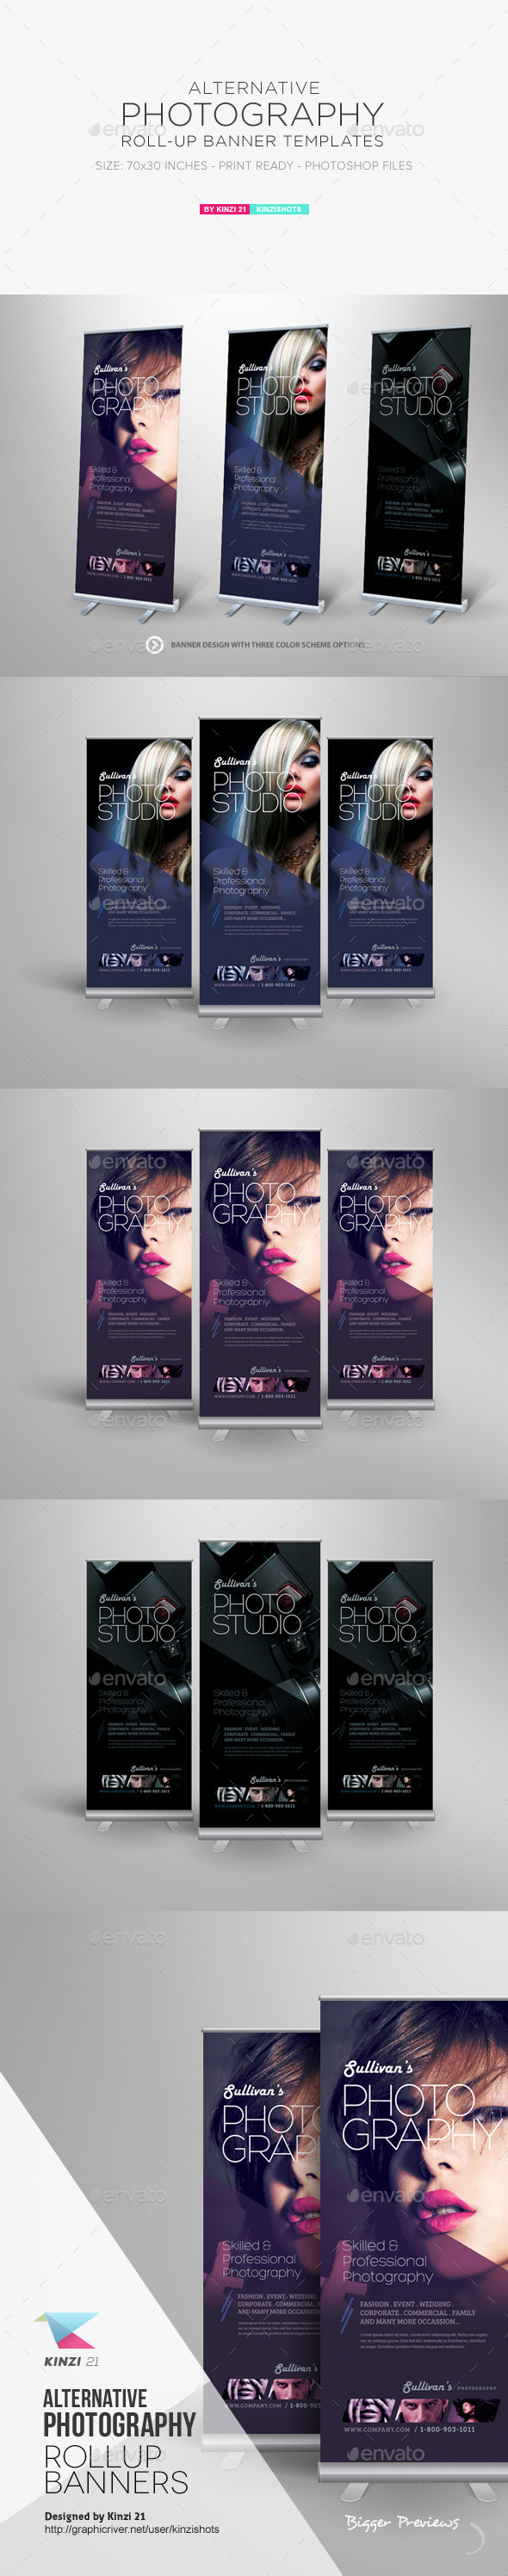 Alternative Photography Roll-up Banners - Corporate Flyers